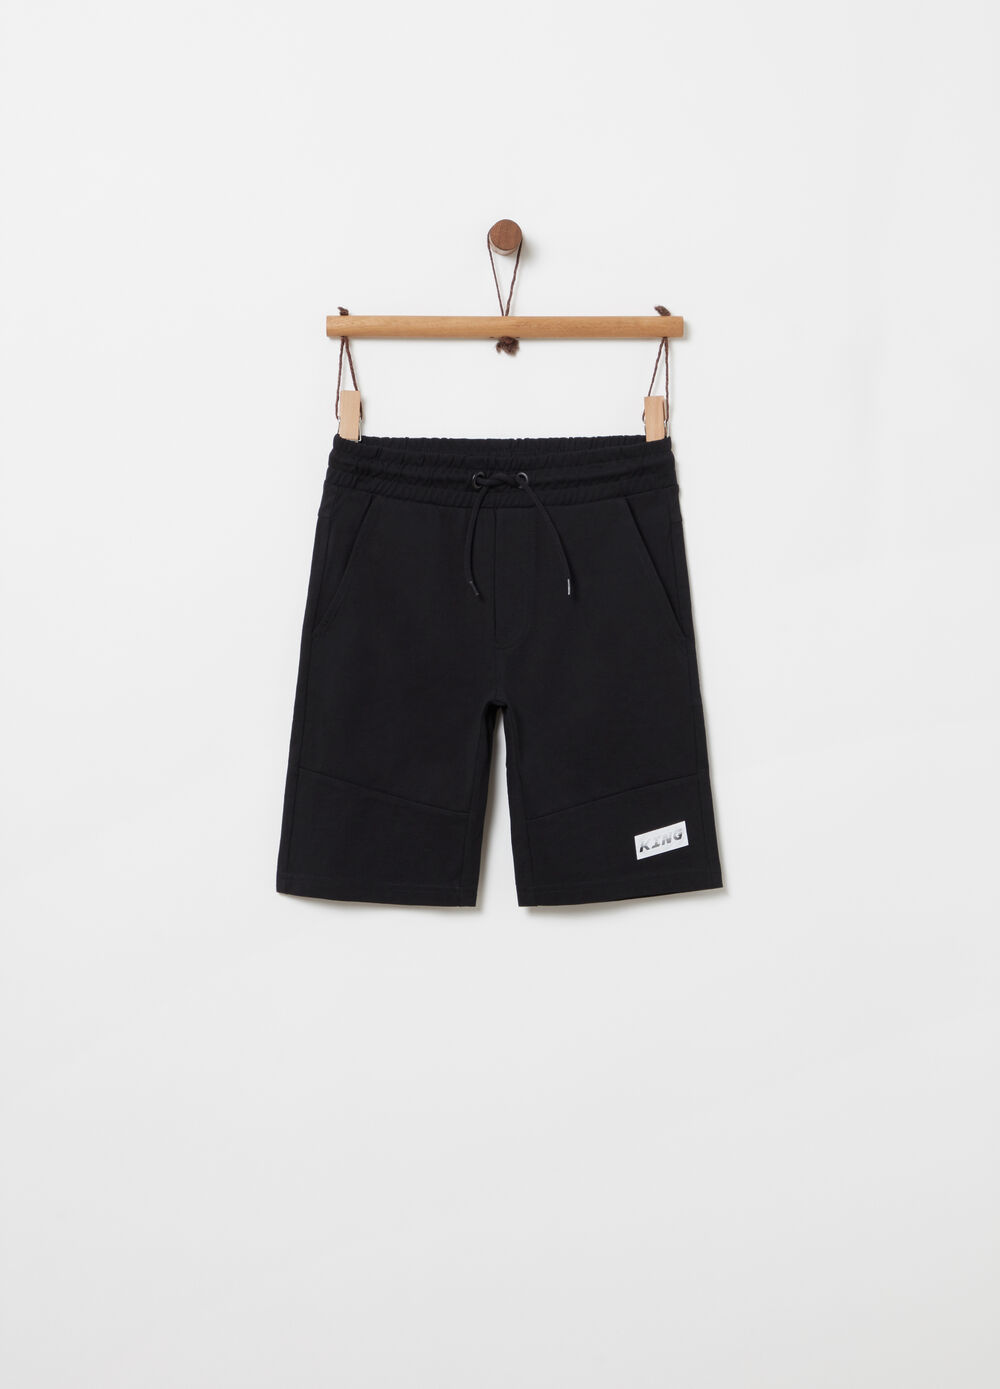 Jersey shorts with drawstring, cuts and print